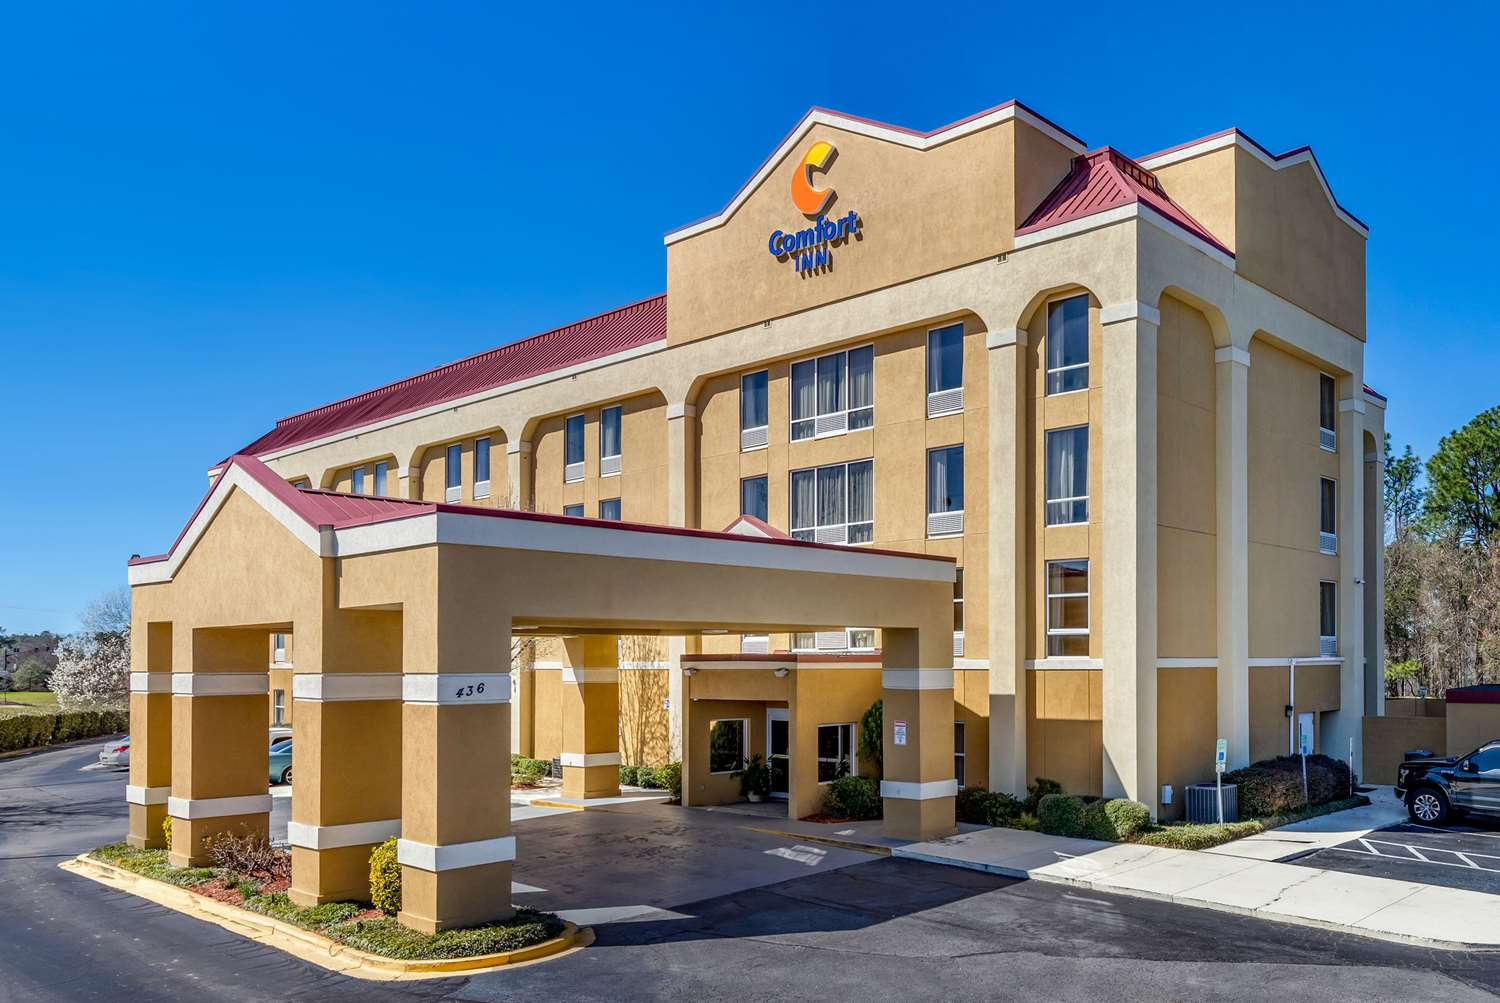 Comfort Inn Blythewood